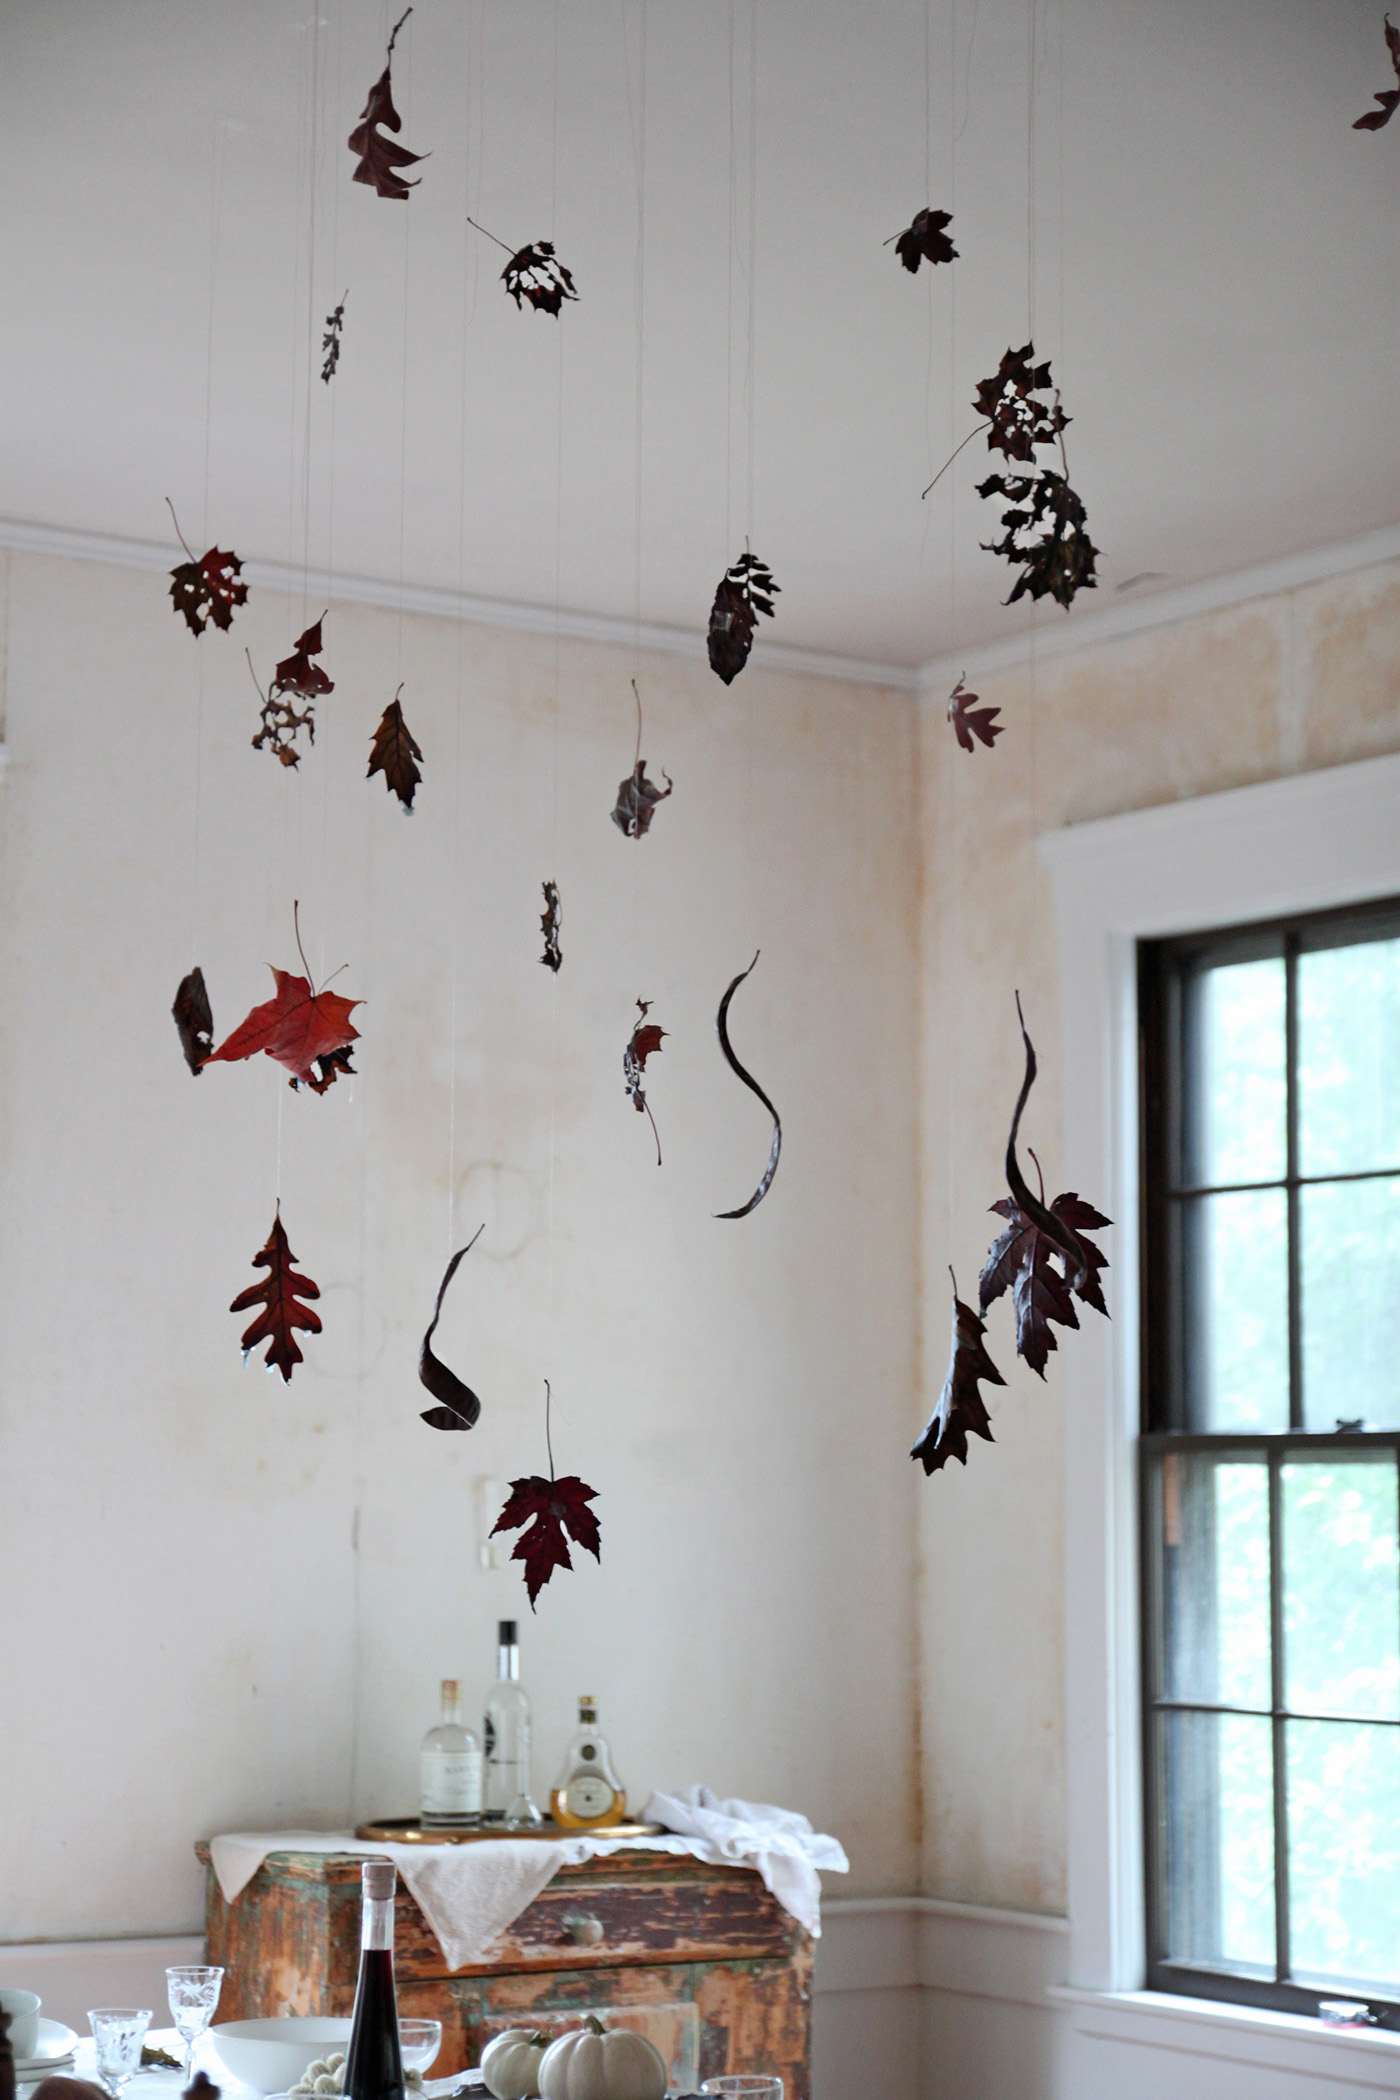 Halloween table with Black Leaves, leaf detail 1, by Justine Hand for Remodelista